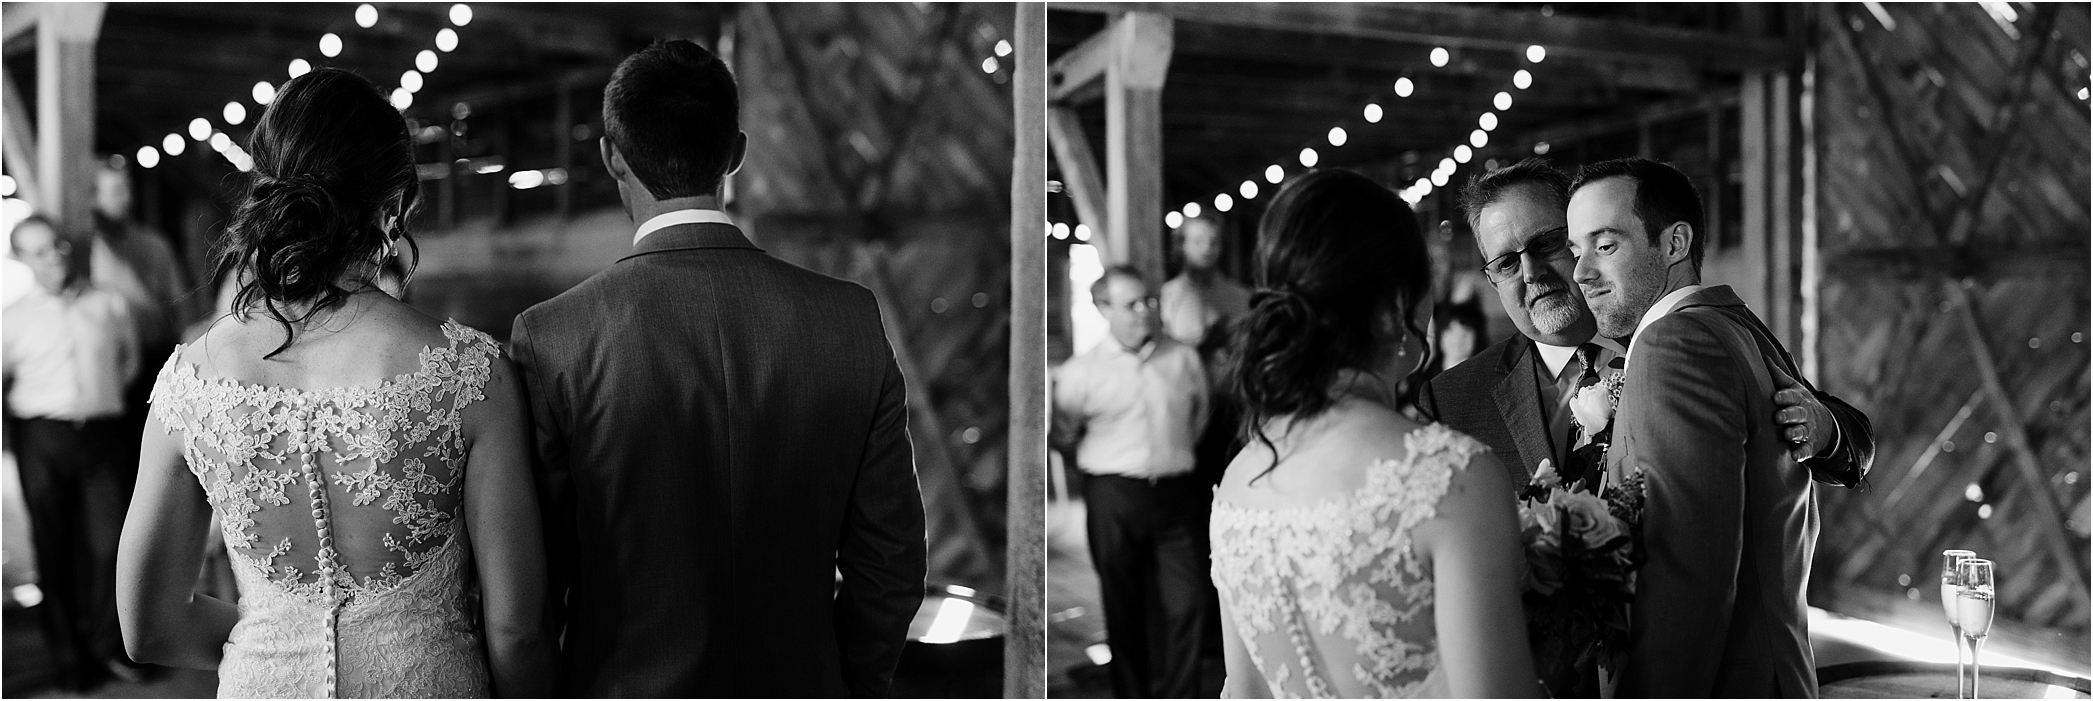 Barn at The Woods Wedding, Matt & Lisa Wood-131.jpg